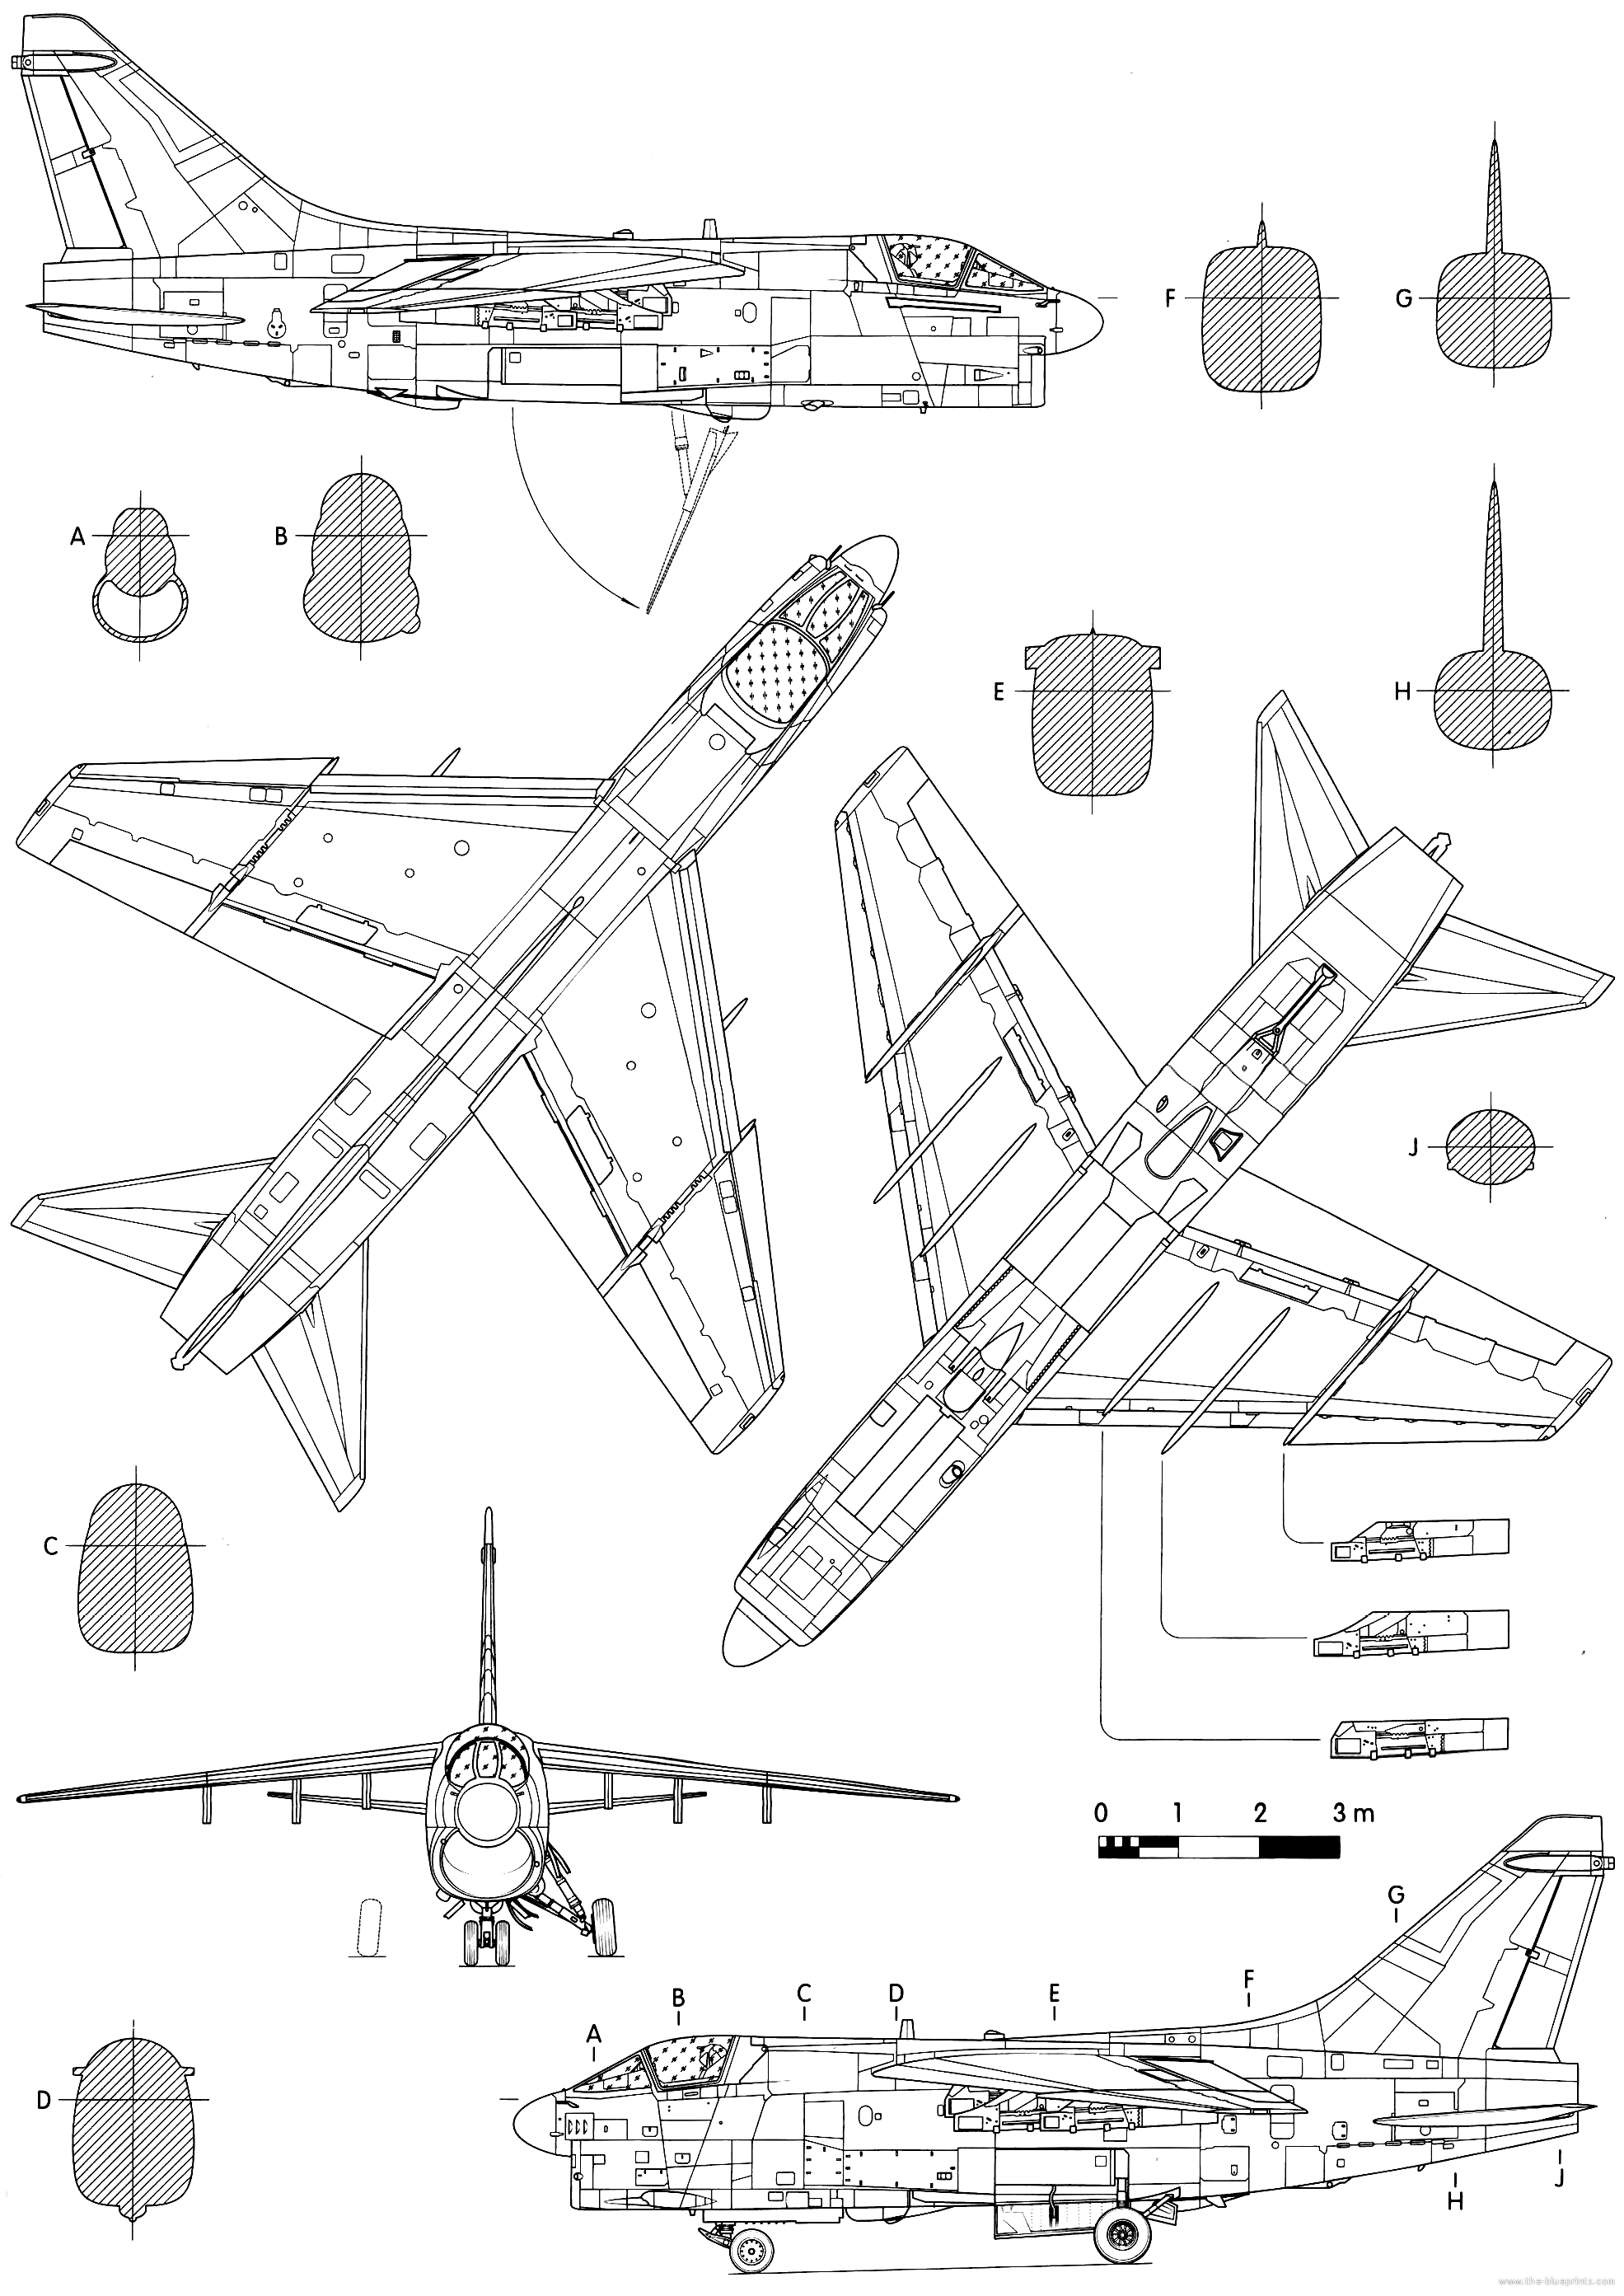 Submit Vat Online >> Blueprints > Modern airplanes > Vought > Vought A-7H Corsair II